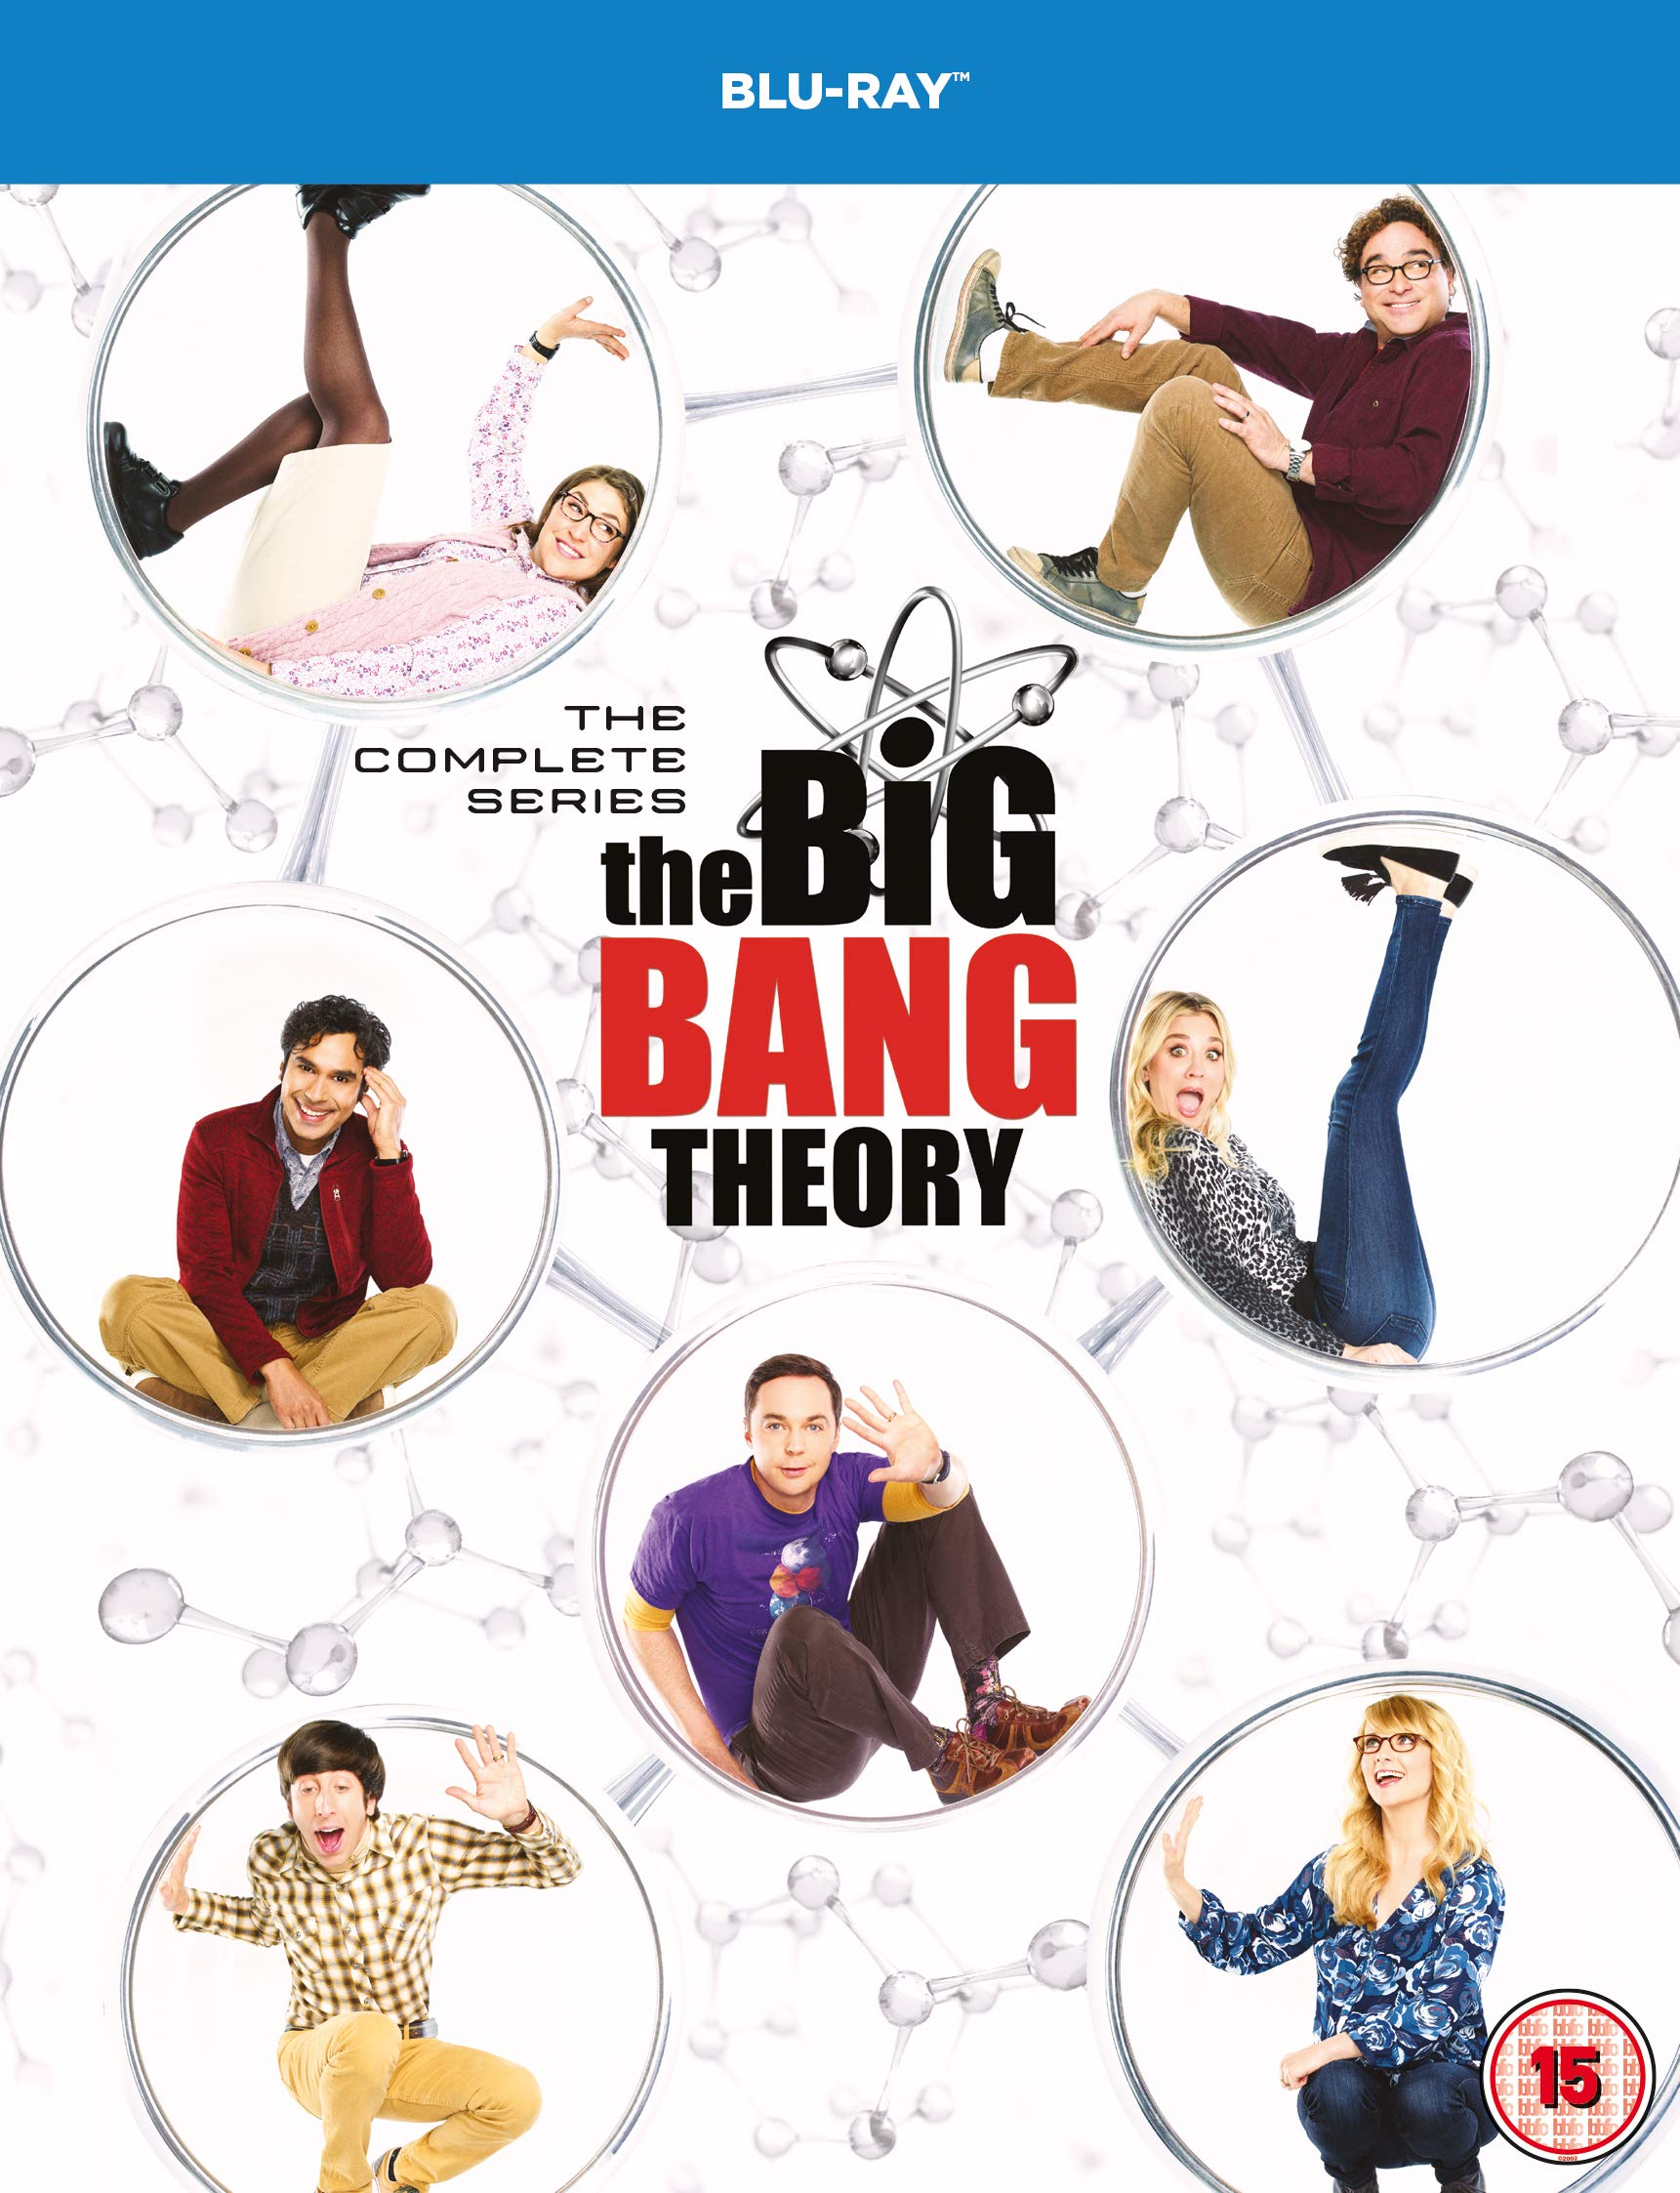 The Big Bang Theory: The Complete Series [Blu-ray] [2007] [2019] [Region Free]